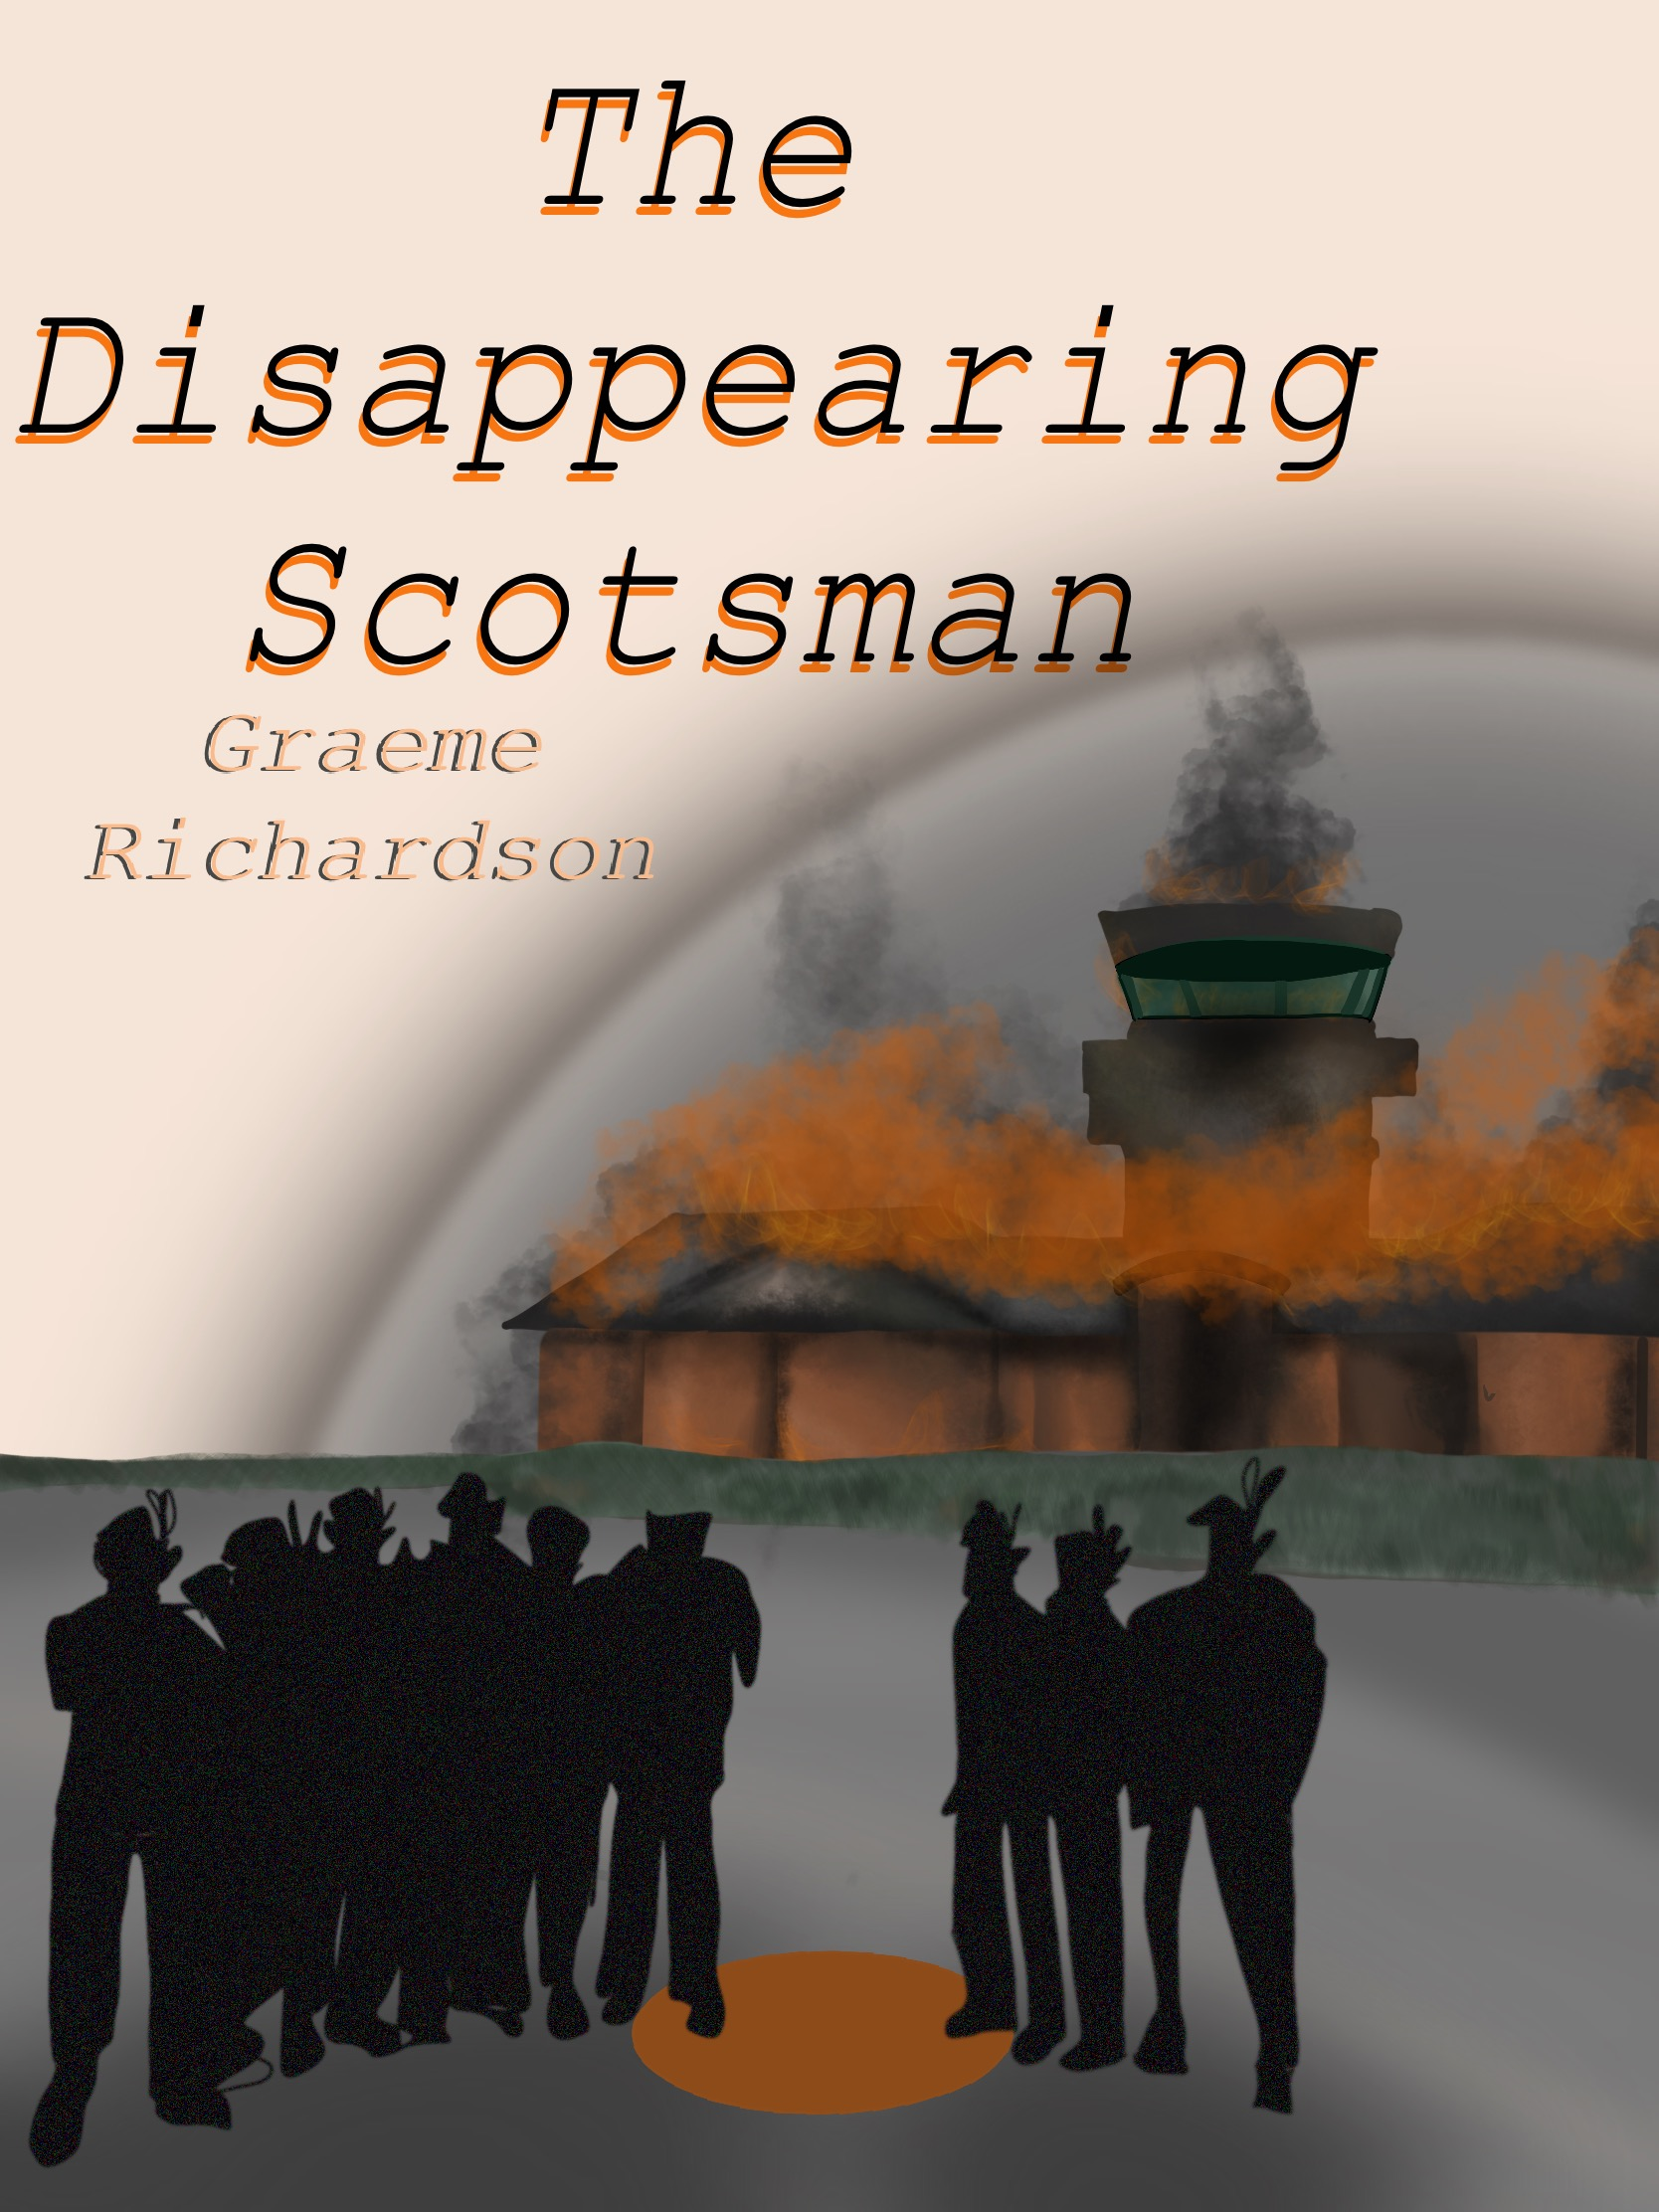 The Disappearing Scotsman novel